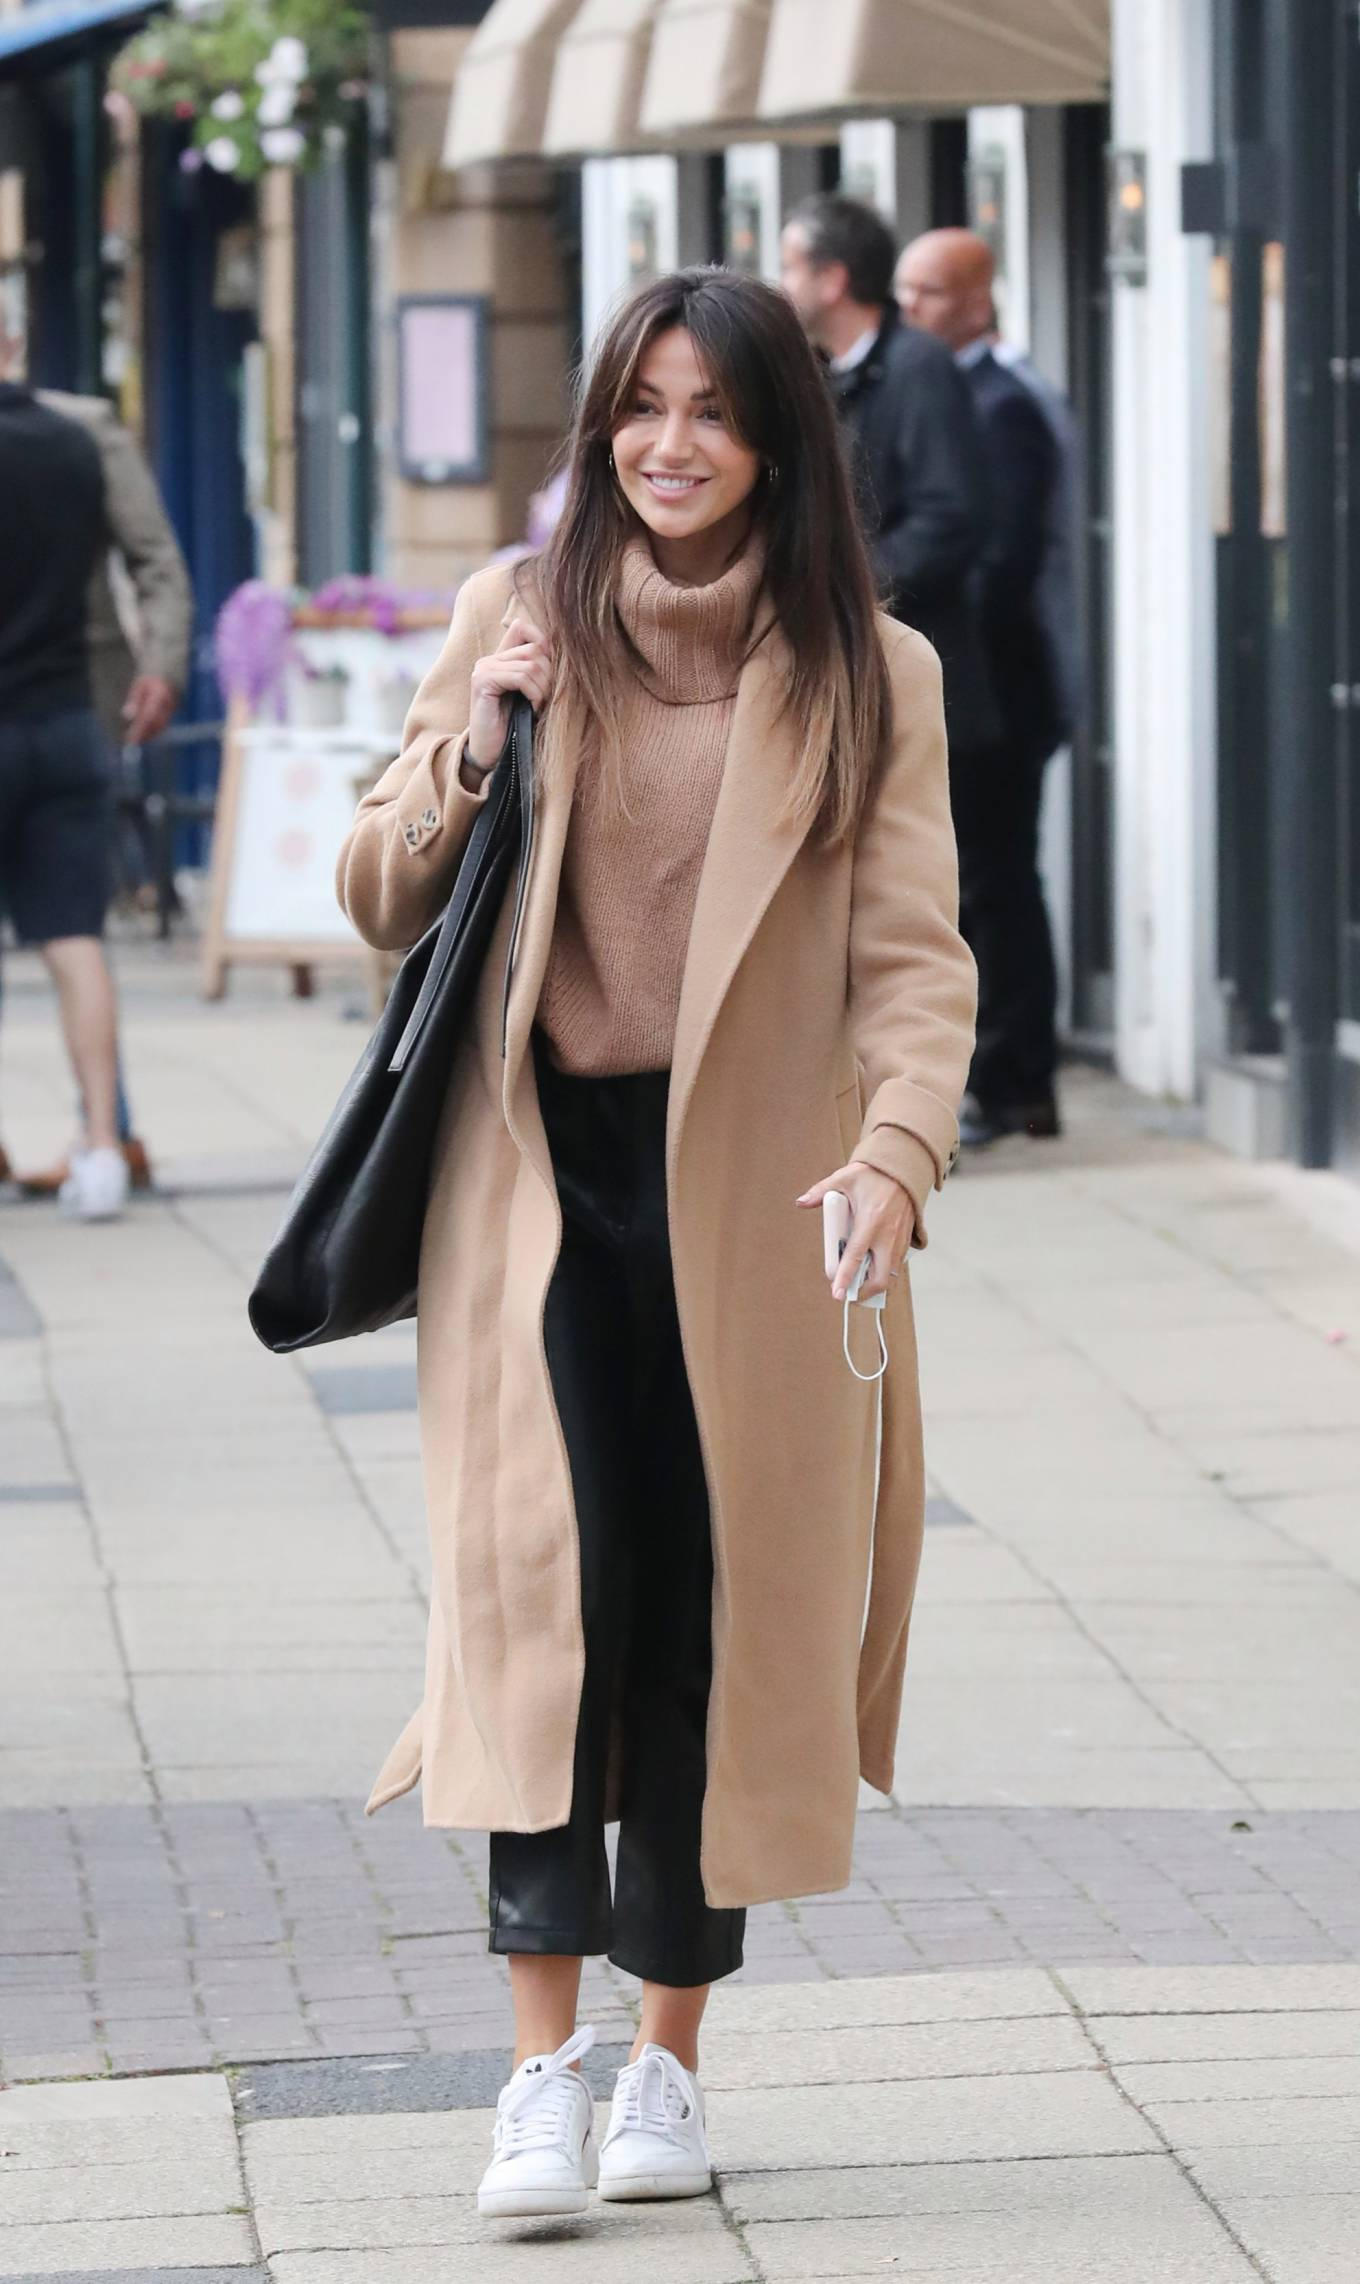 Michelle Keegan donning white Nike lace-up sneakers